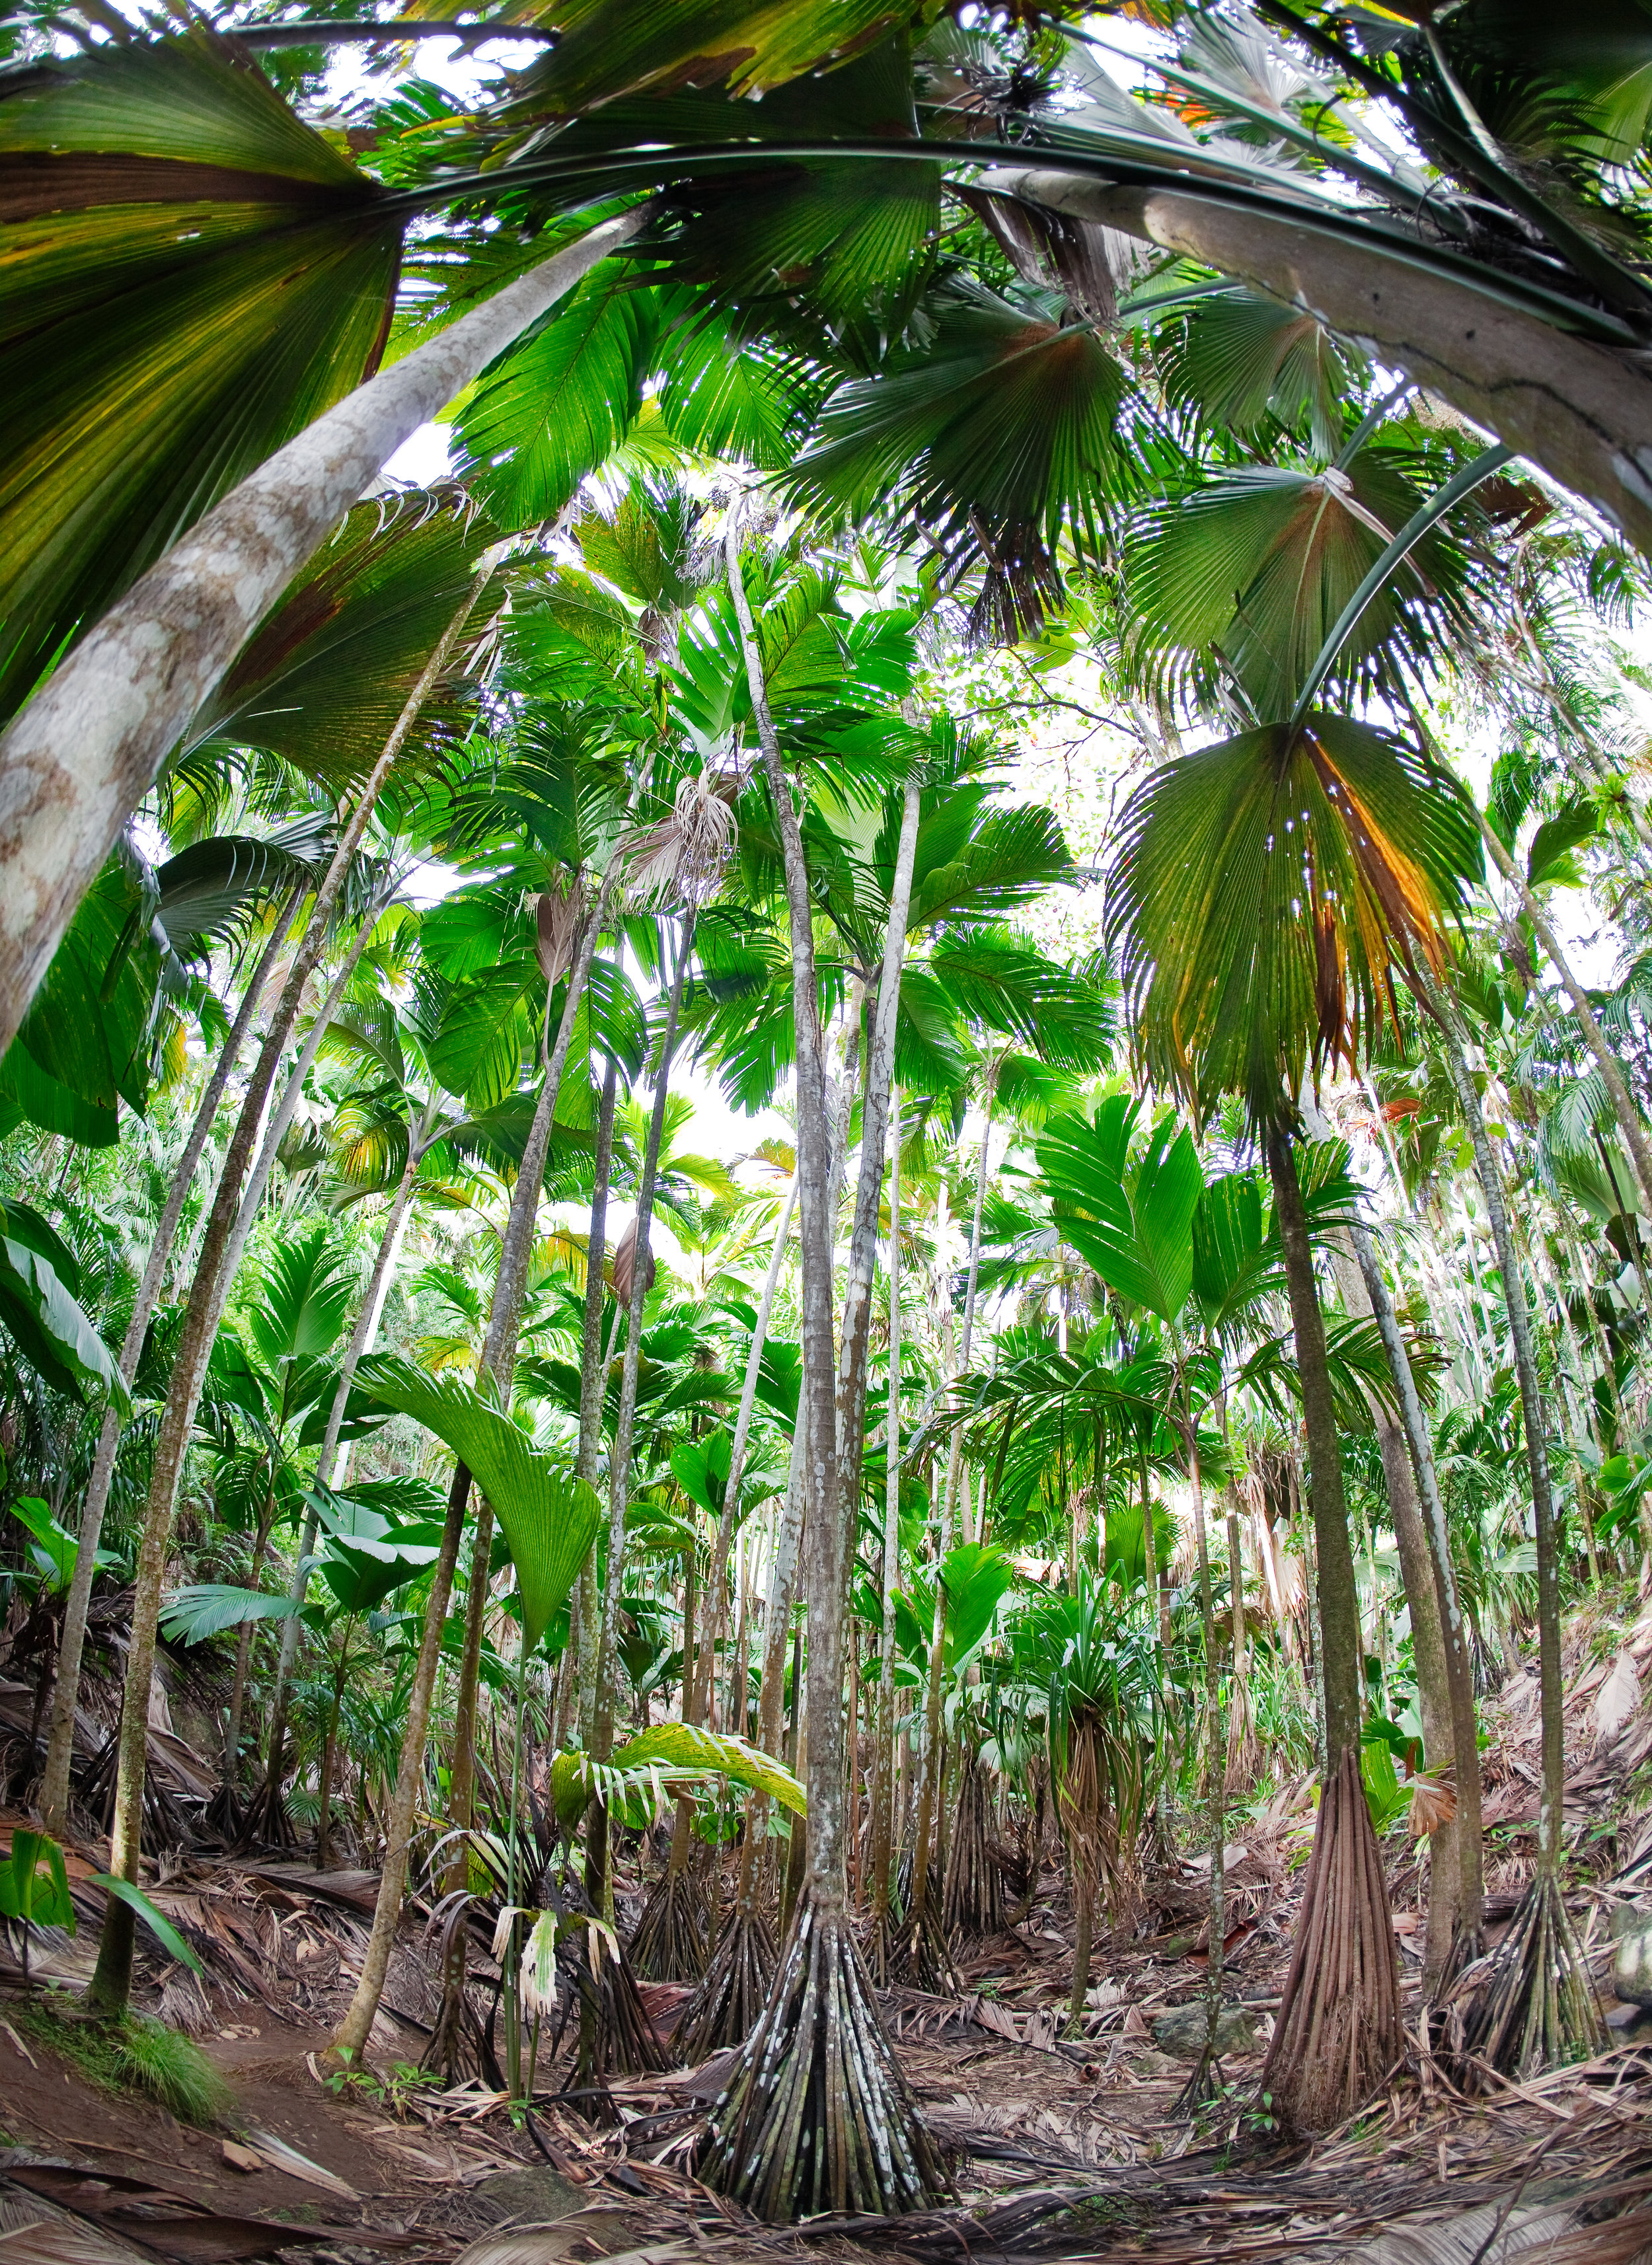 tropical-forest-of-palm-trees-seychelles-P8LDTSF.jpg